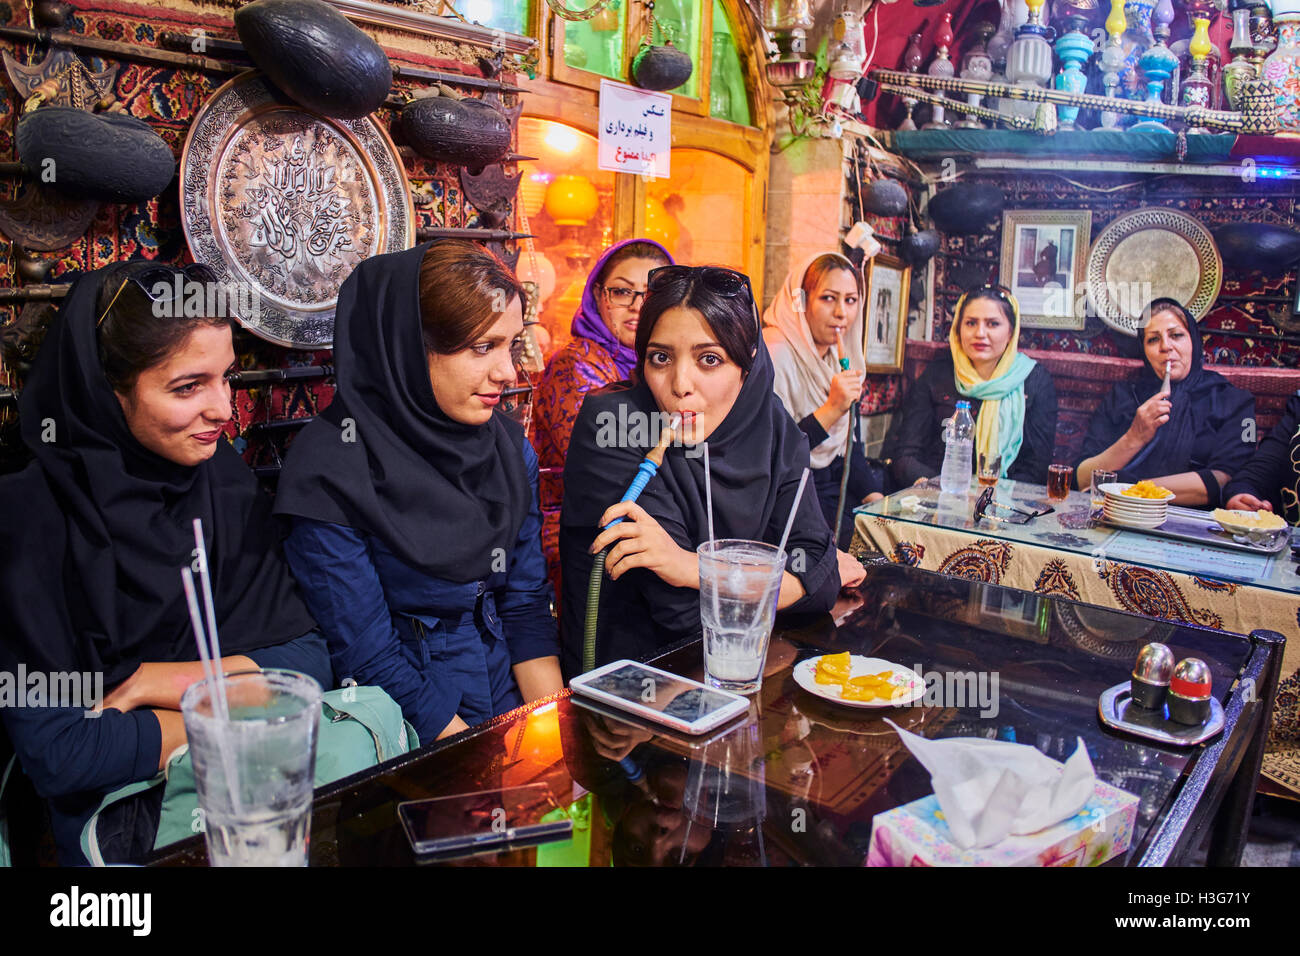 Iran, Isfahan, Azadegan teahouse, young women smoking a water pipe - Stock Image